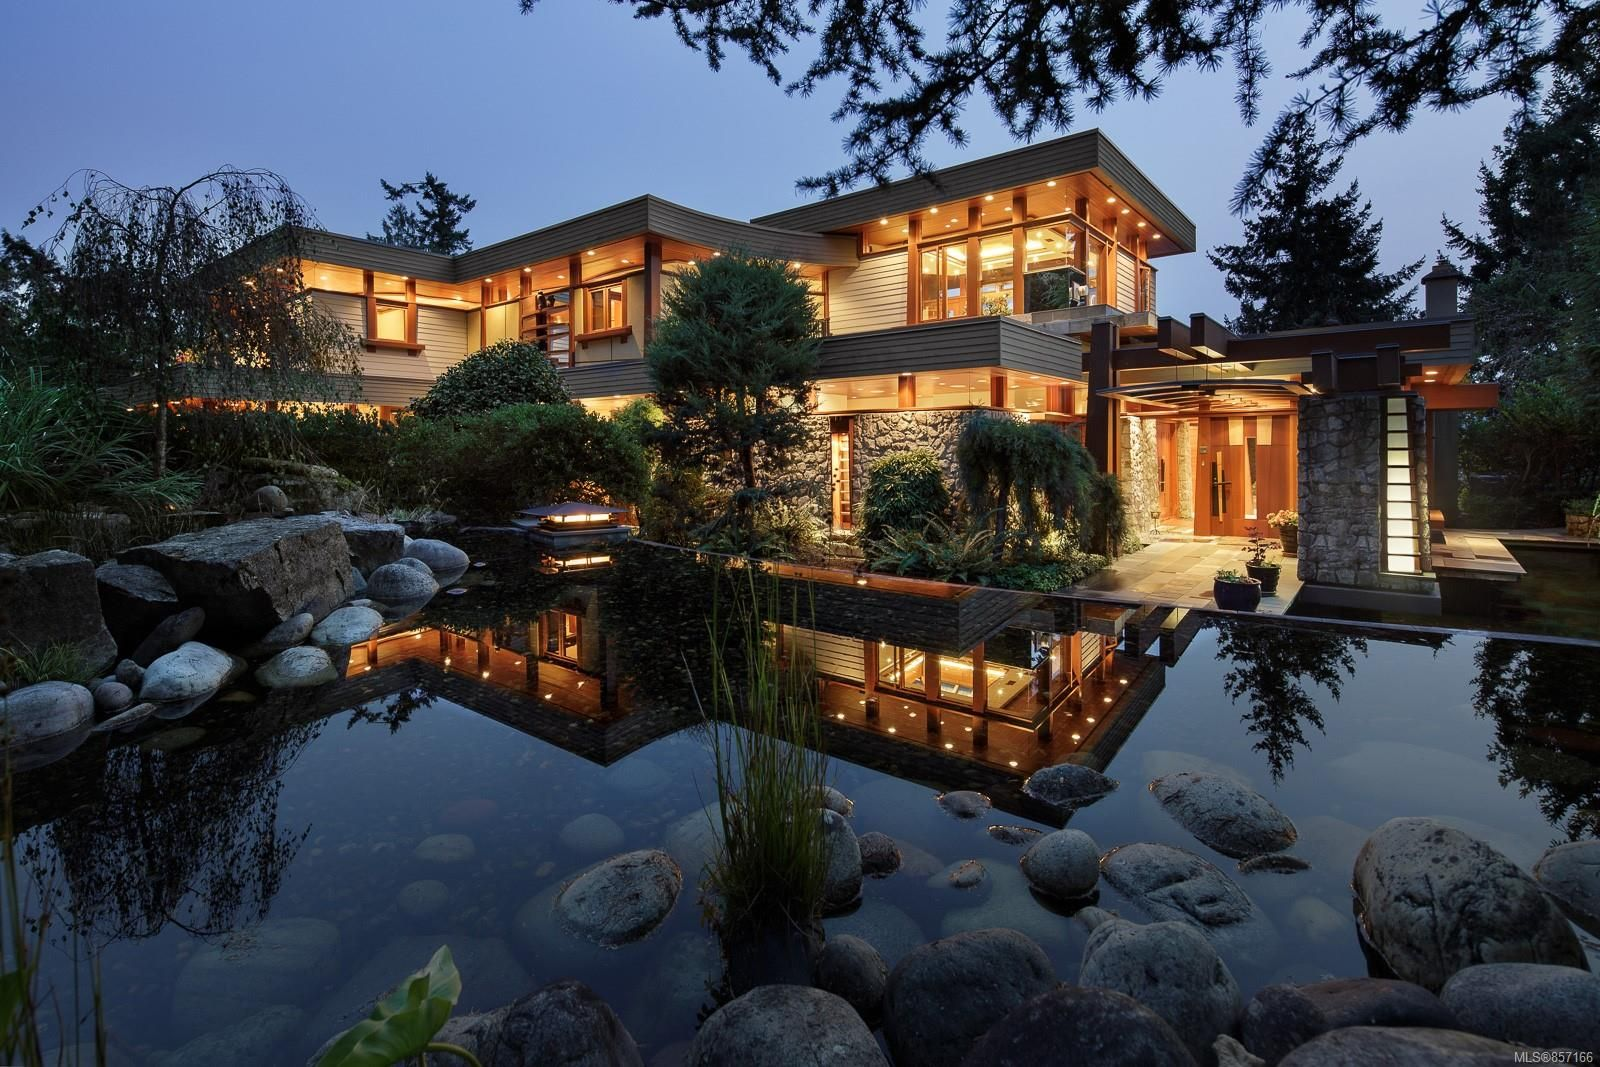 Main Photo: 629 Senanus Dr in : CS Inlet House for sale (Central Saanich)  : MLS®# 857166